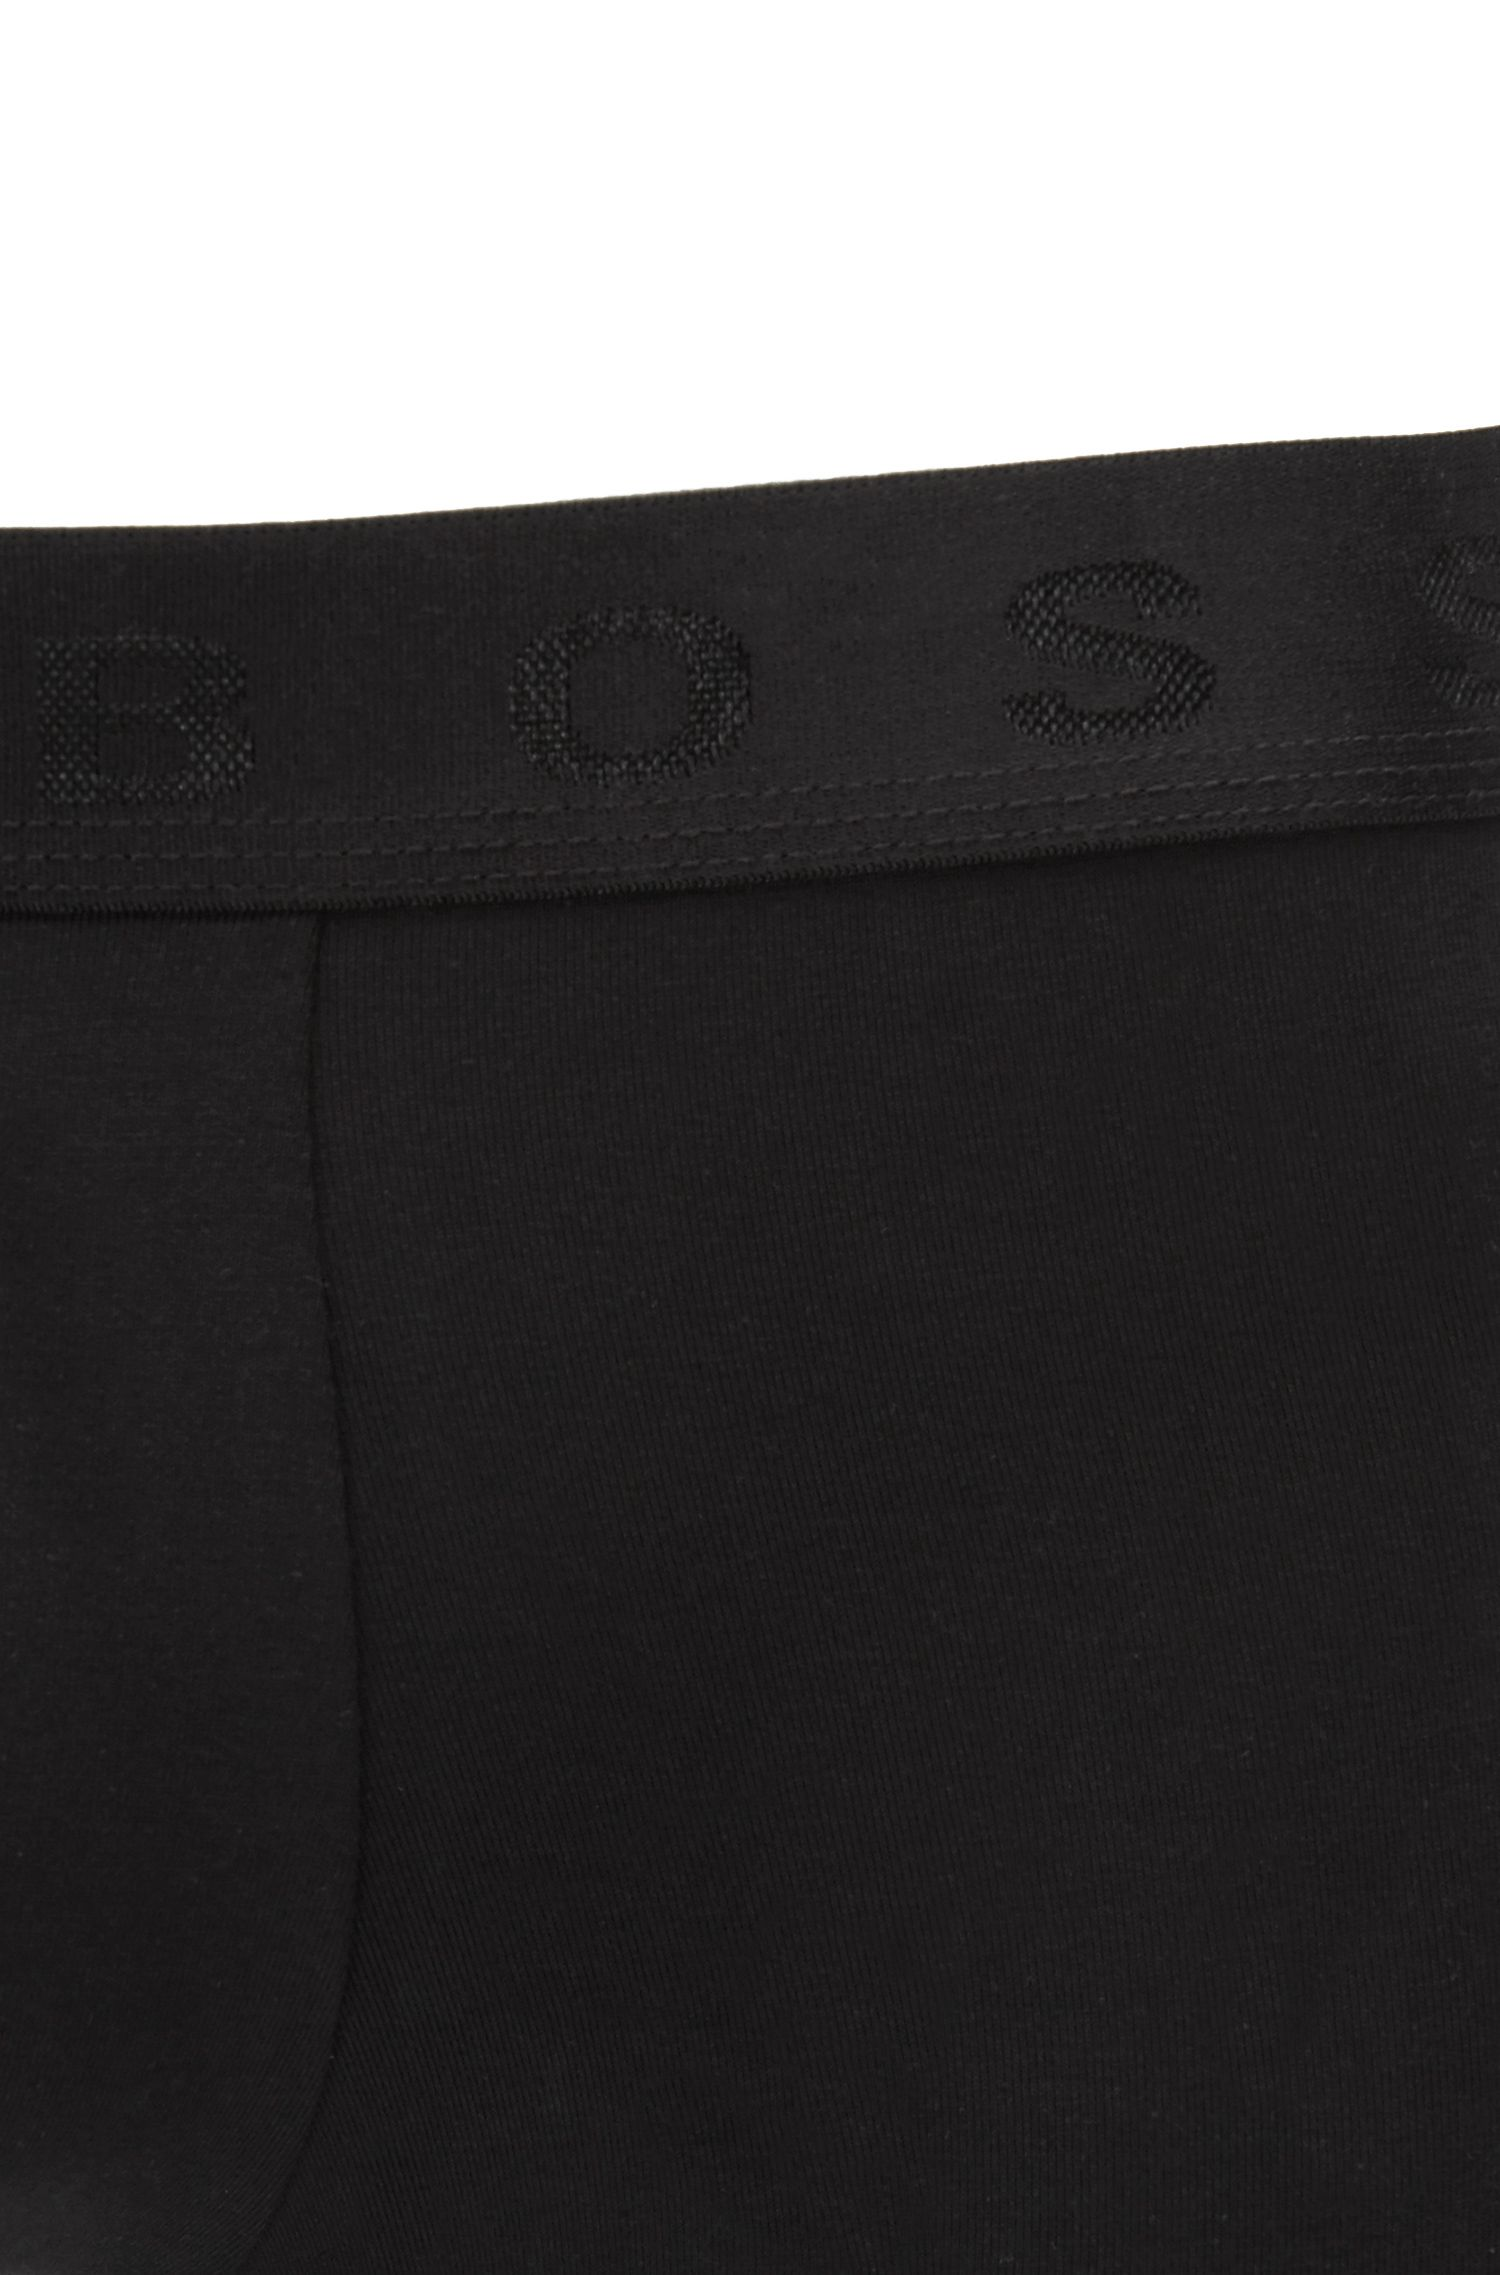 Boxer en coton égyptien stretch durable, Noir